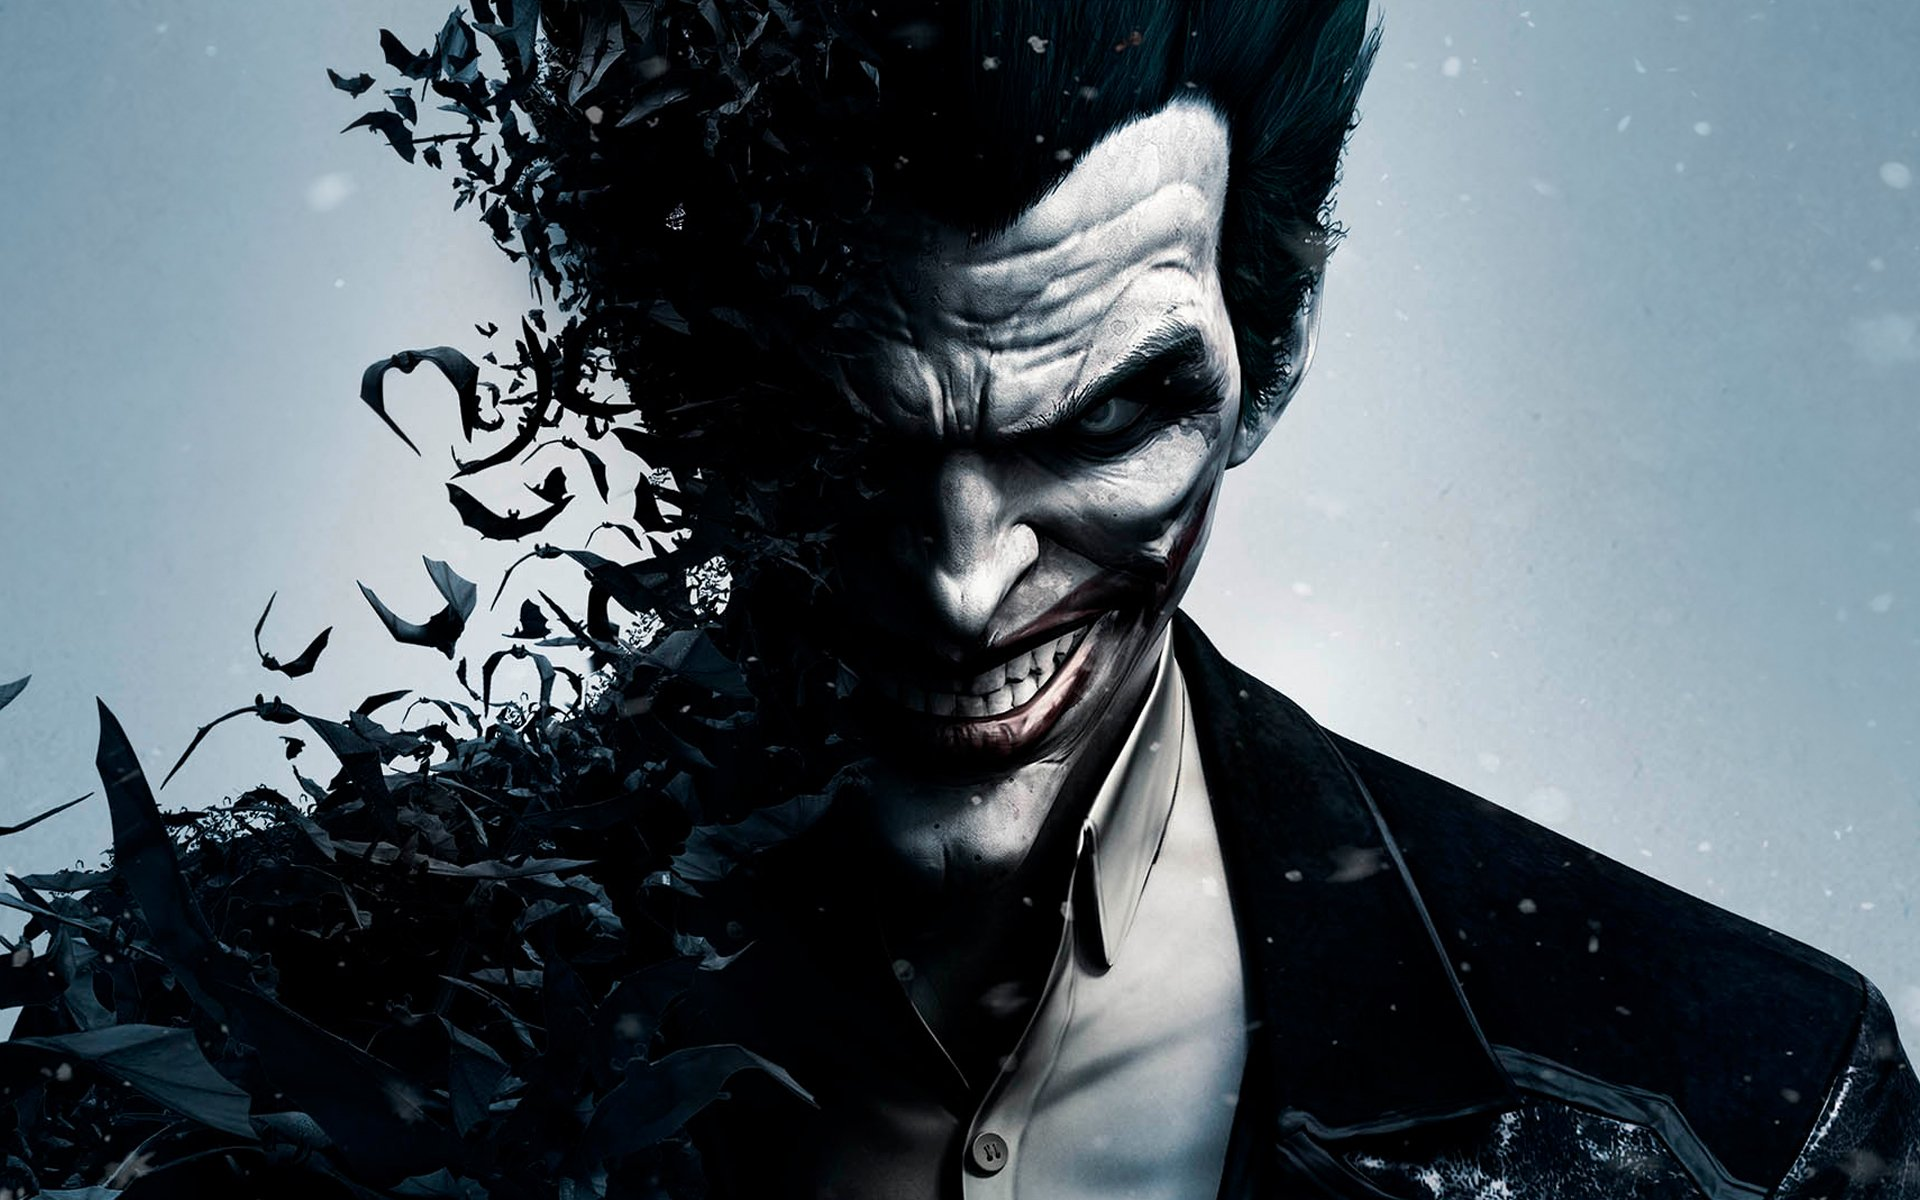 595 joker hd wallpapers | background images - wallpaper abyss